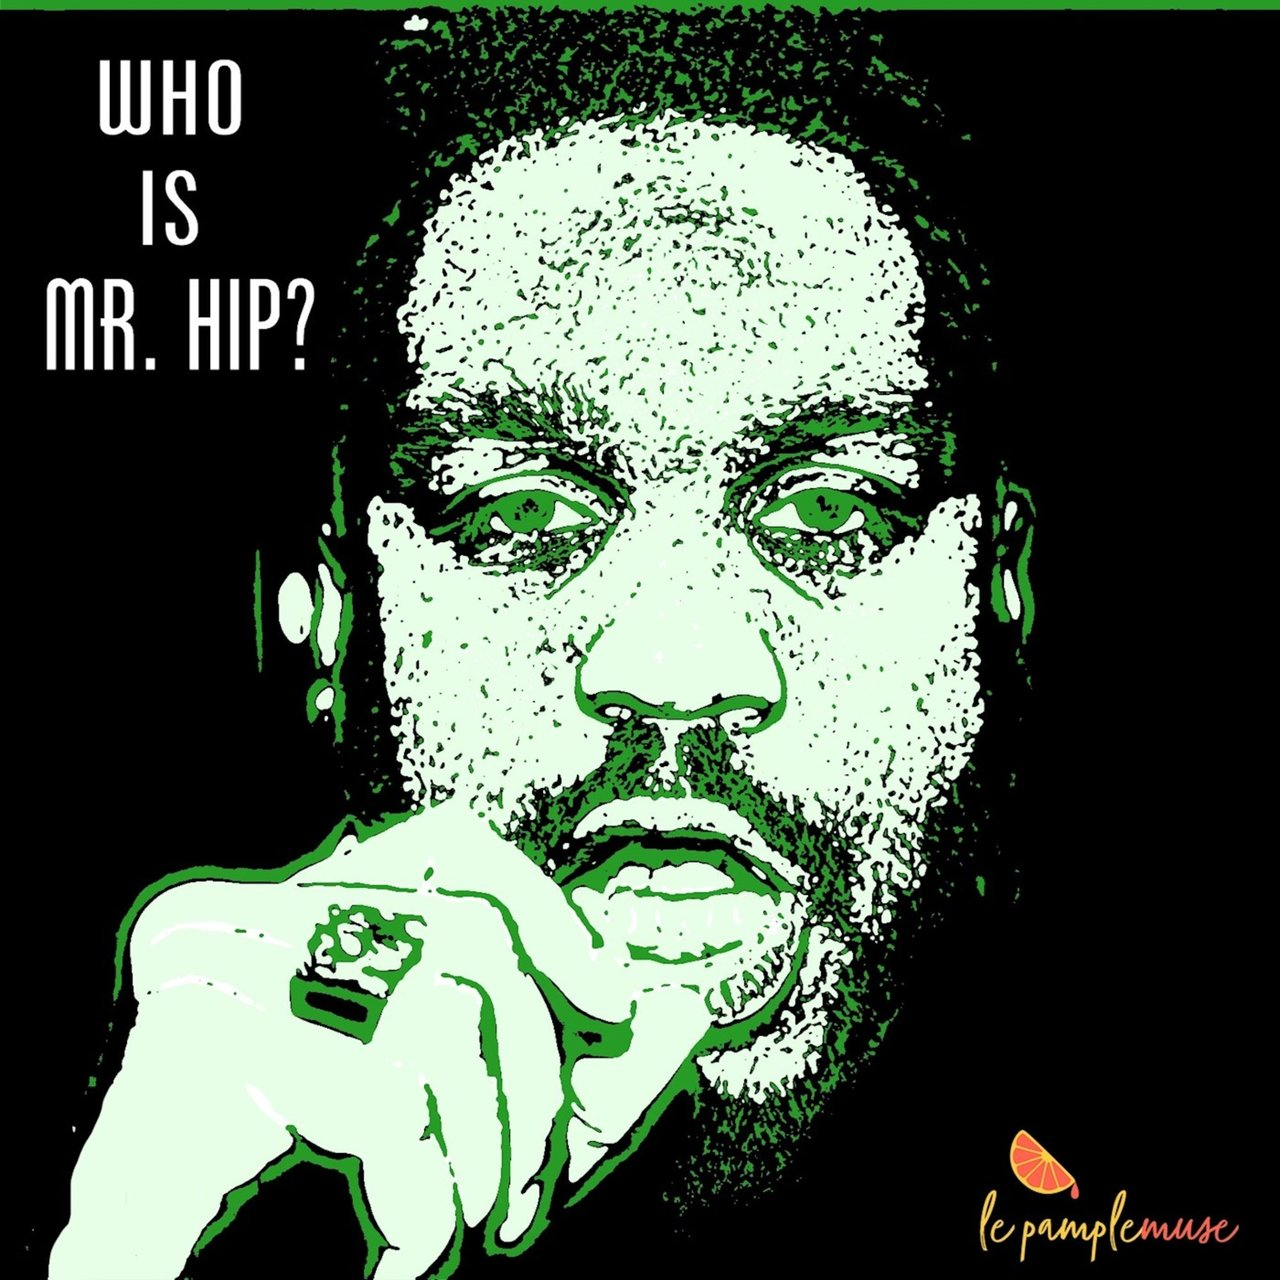 Who Is Mr. Hip?